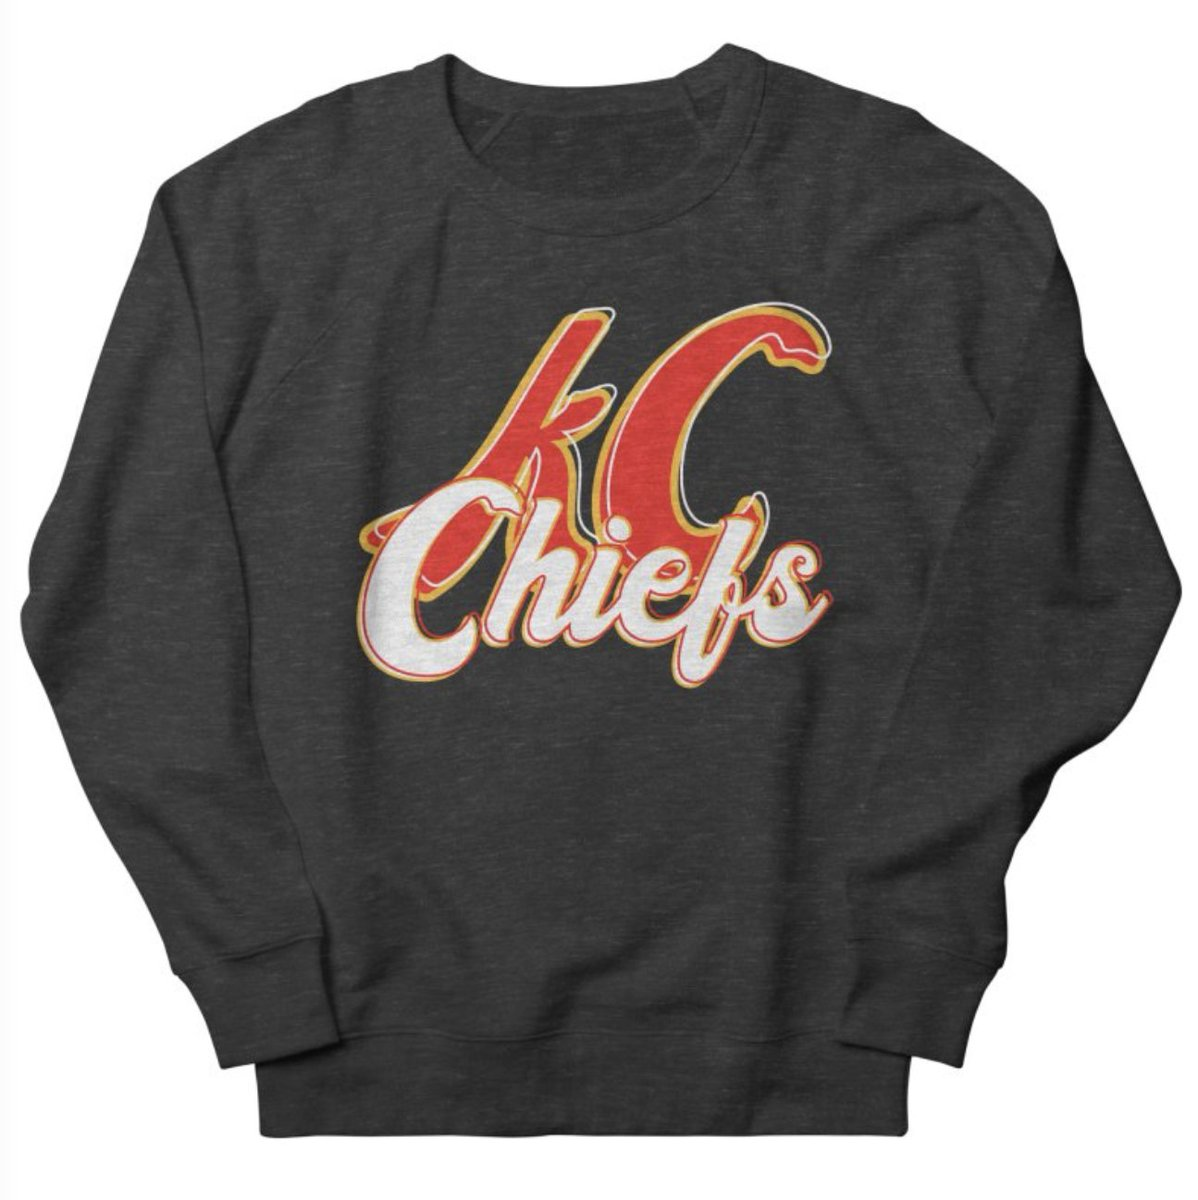 What do you think about our latest design?  #ChiefsKingdom